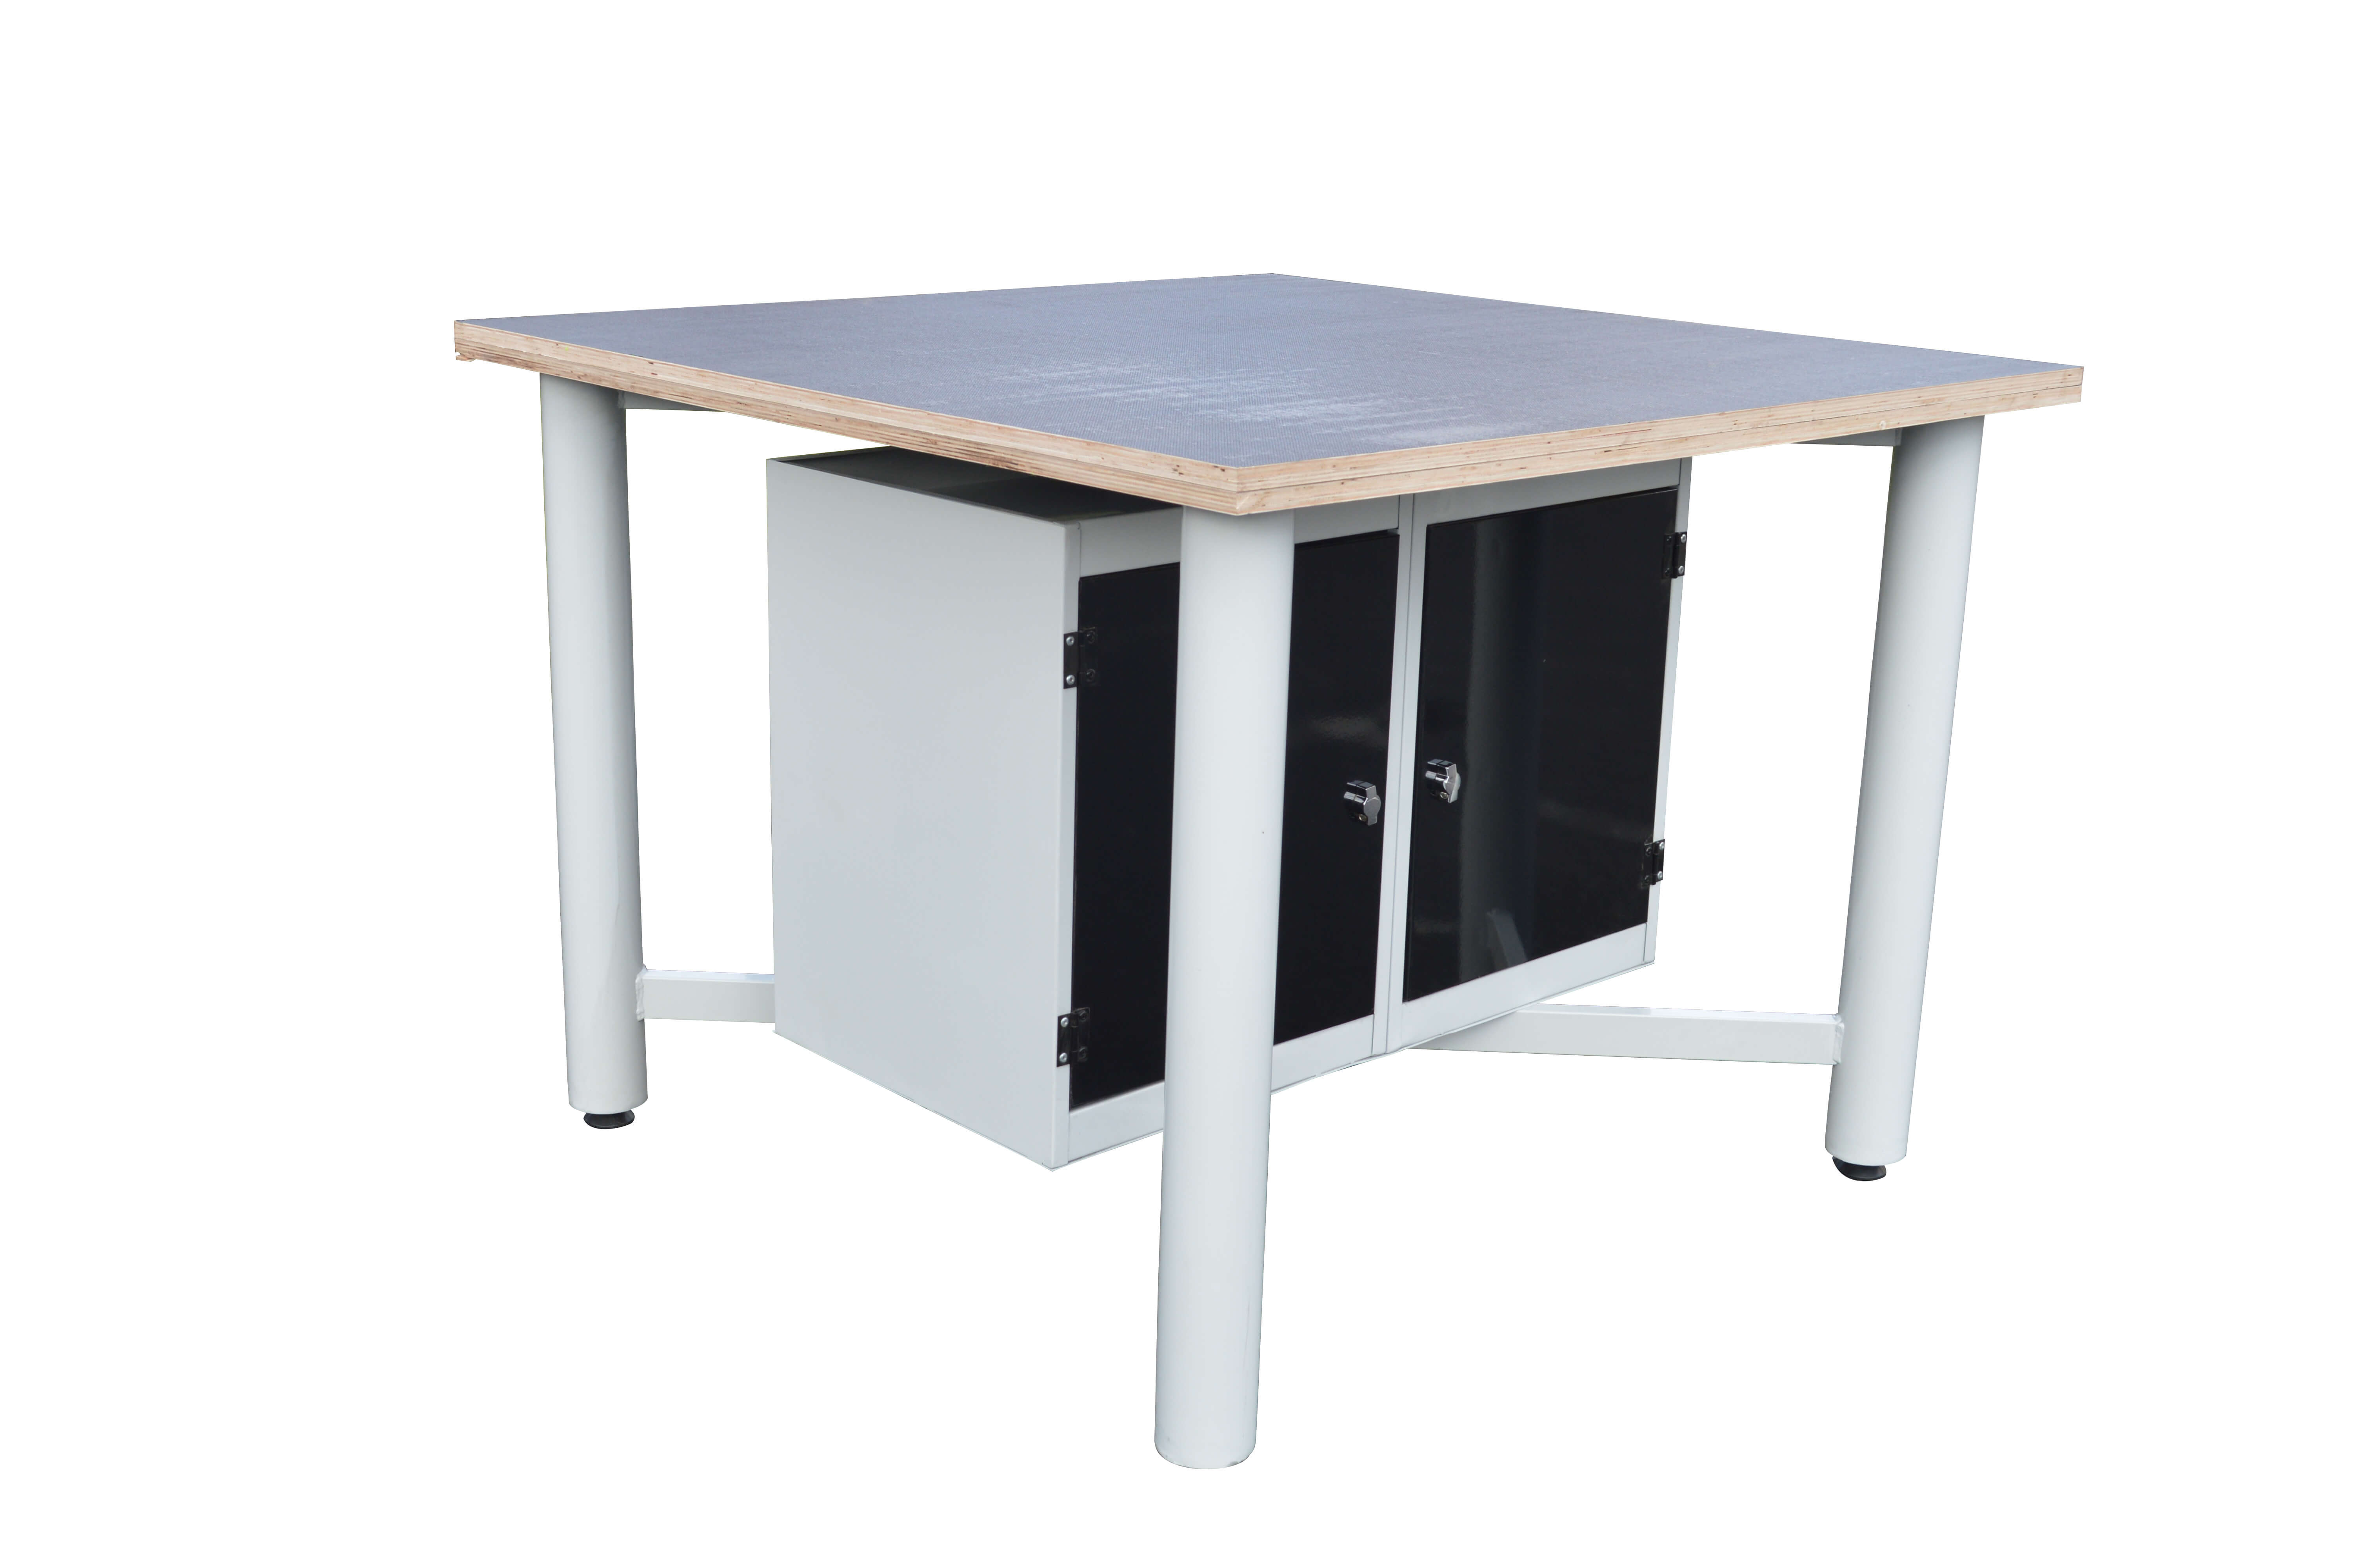 Edubench 4 Station Bench with multi-use top